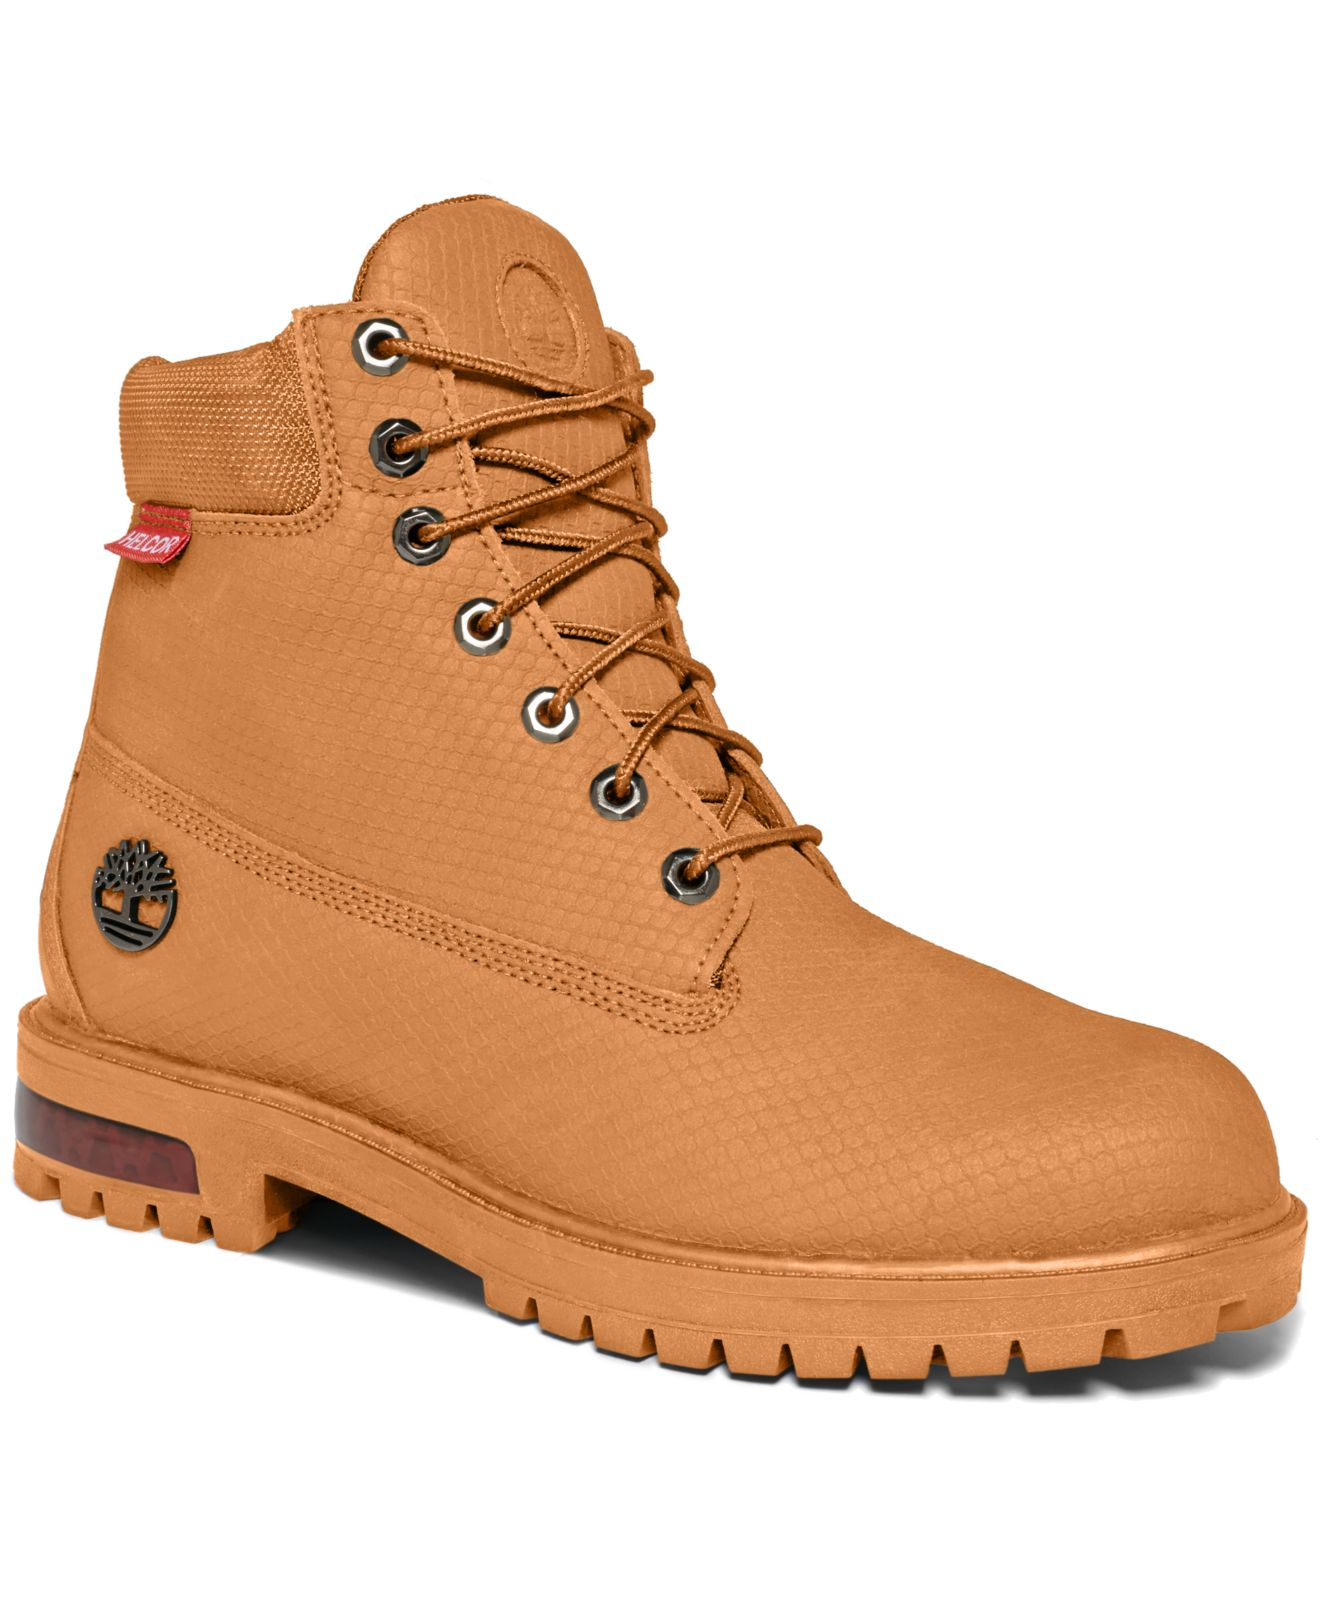 0f648fc9 Timberland Men's New Market Scuff Proof Ii 6'' Waterproof Boots in ...